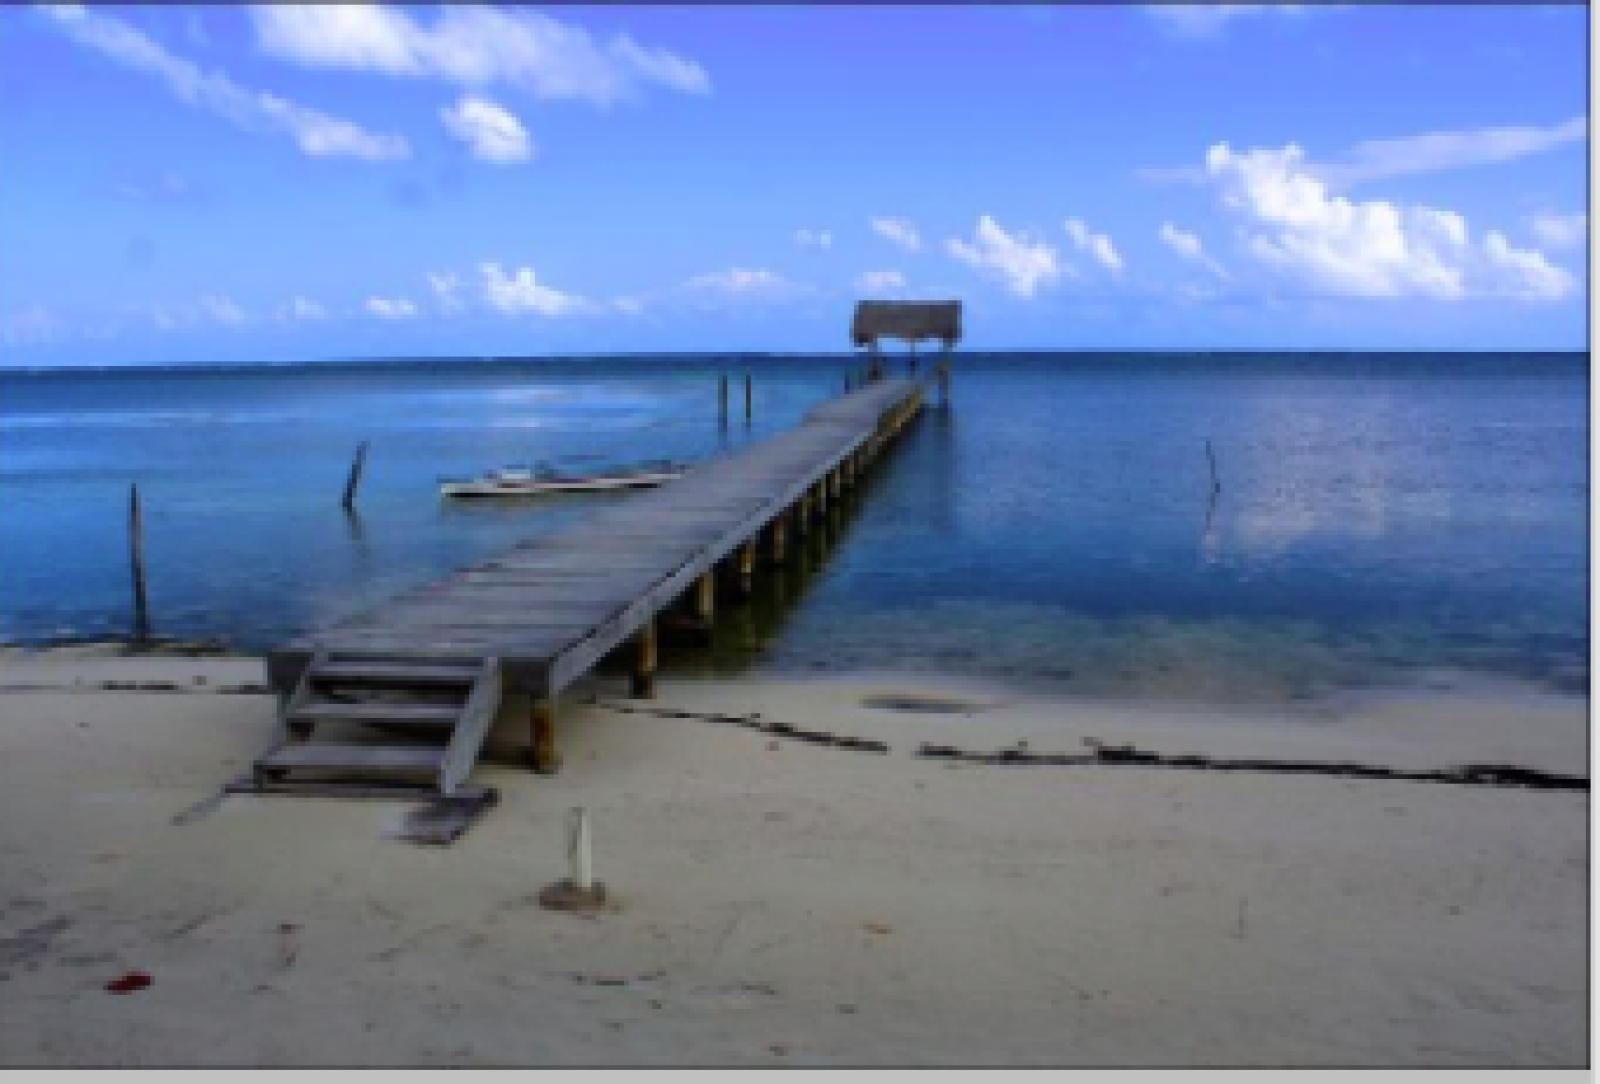 The community dock perfect for snorkeling, boating, fishing or hammocking.